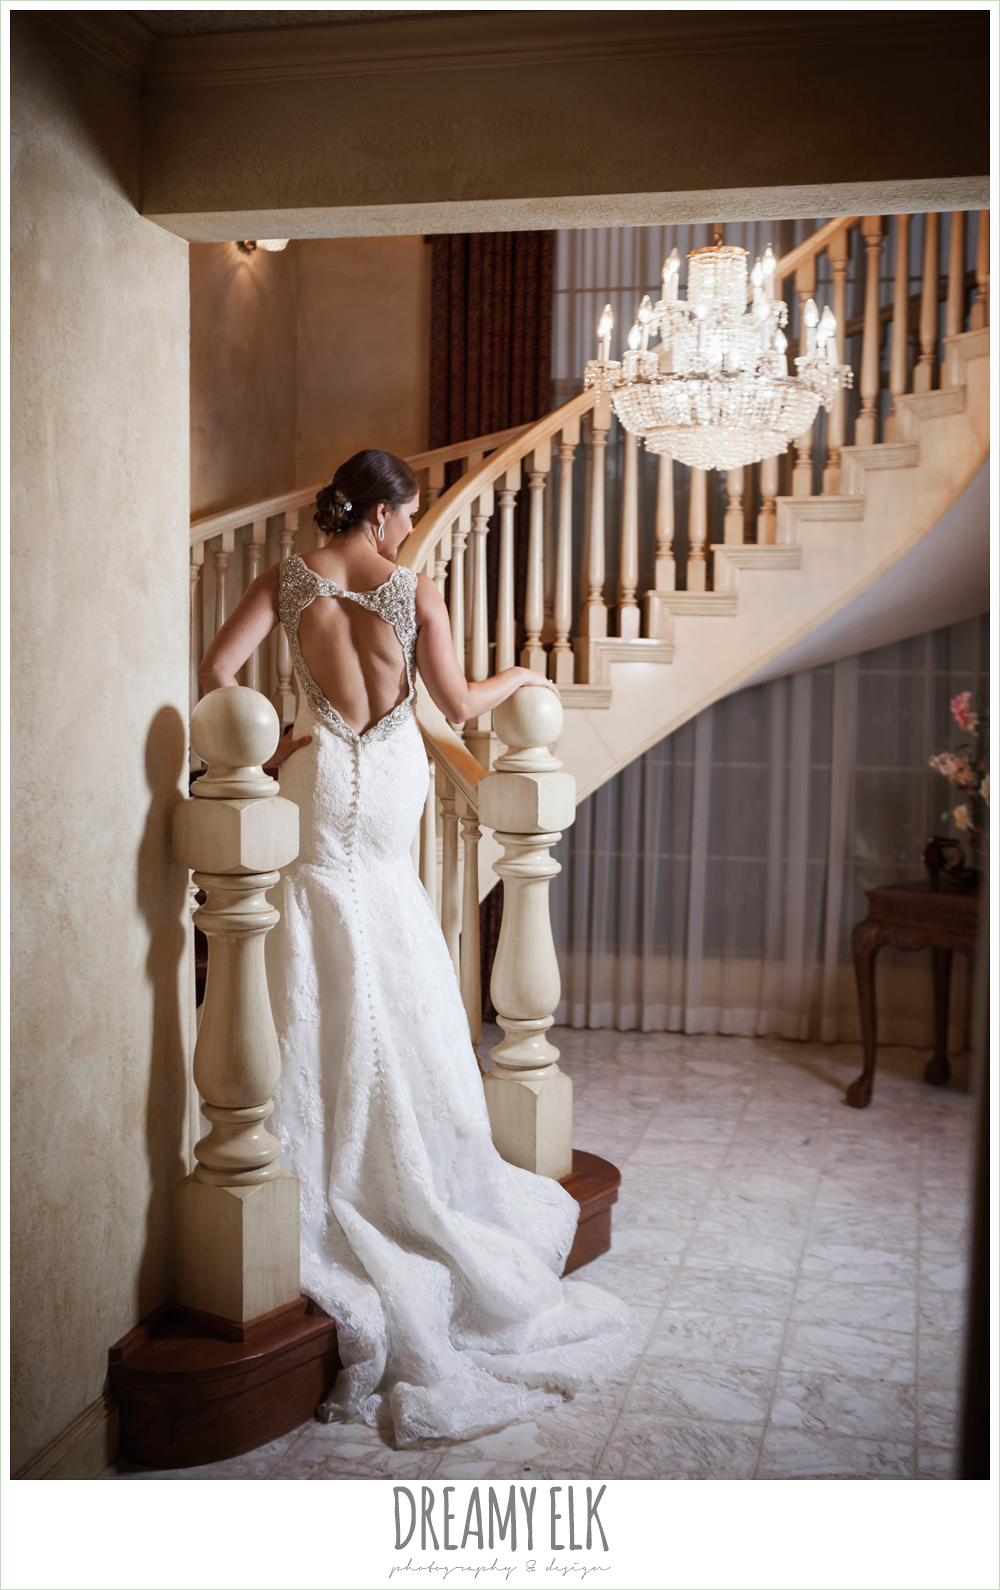 indoor bridal photo, staircase, backless wedding dress, ashelynn manor {dreamy elk photography and design}